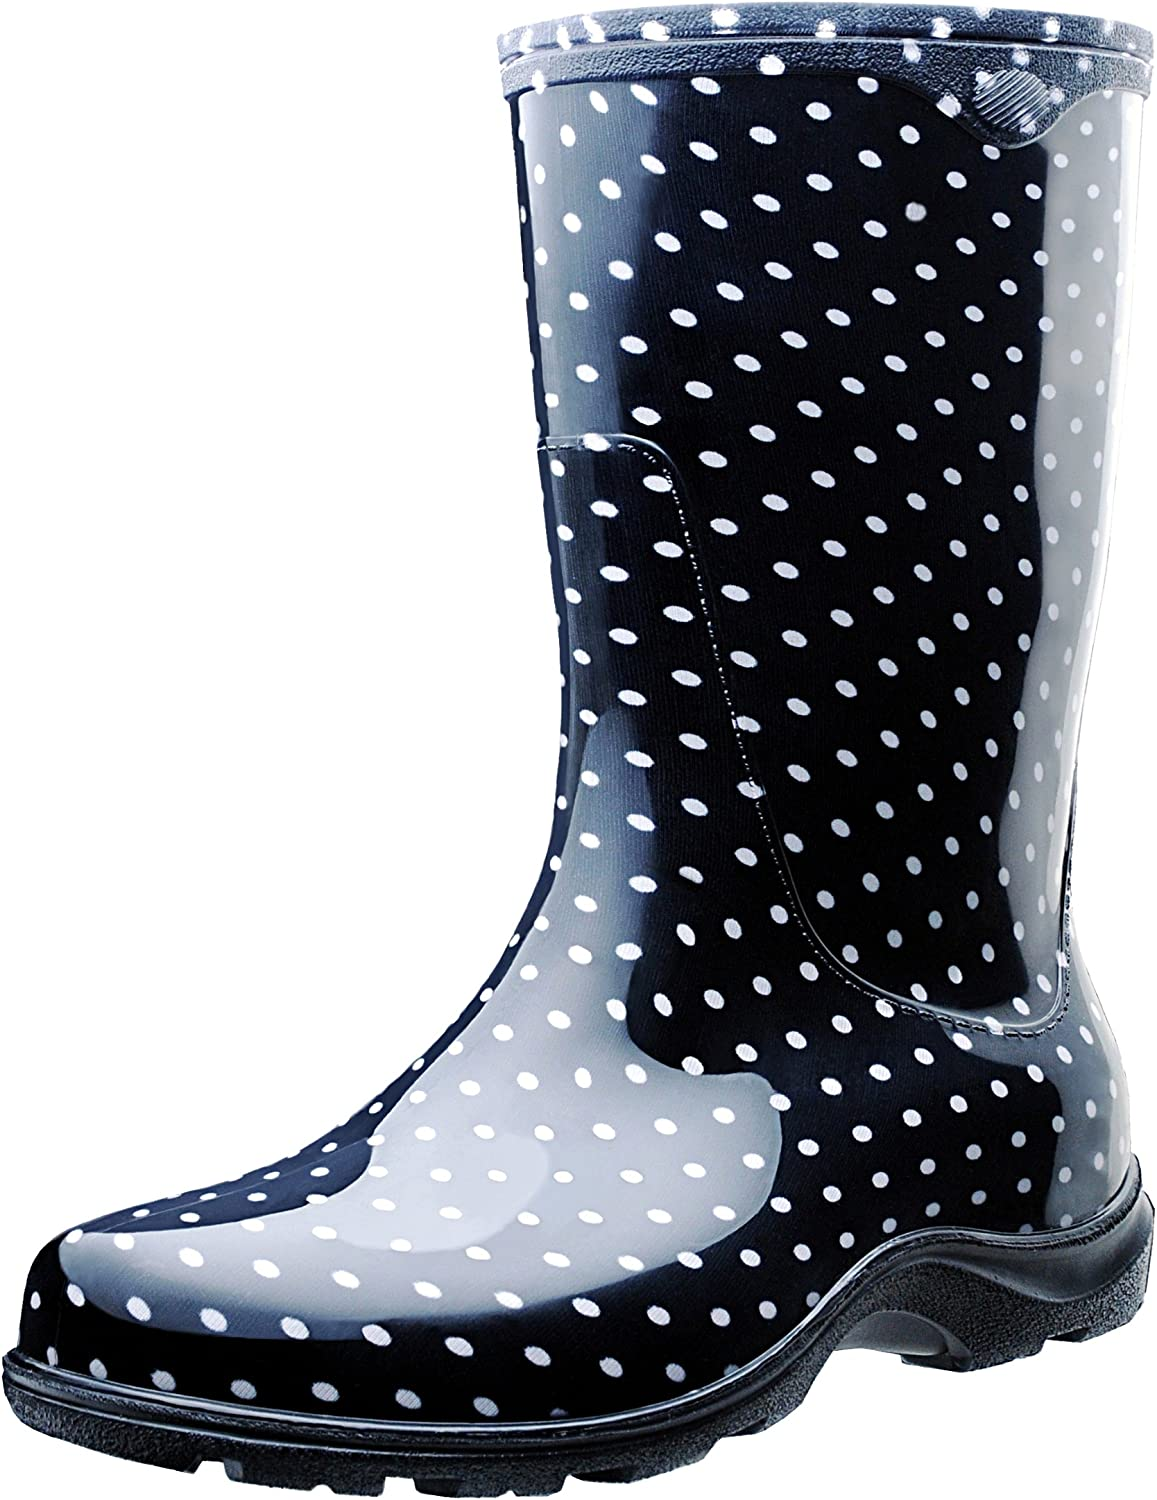 Sloggers Women's Waterproof Rain and Garden Boot with Comfort Insole, Black White Polka Dot, Size 7, Style 5013BP07